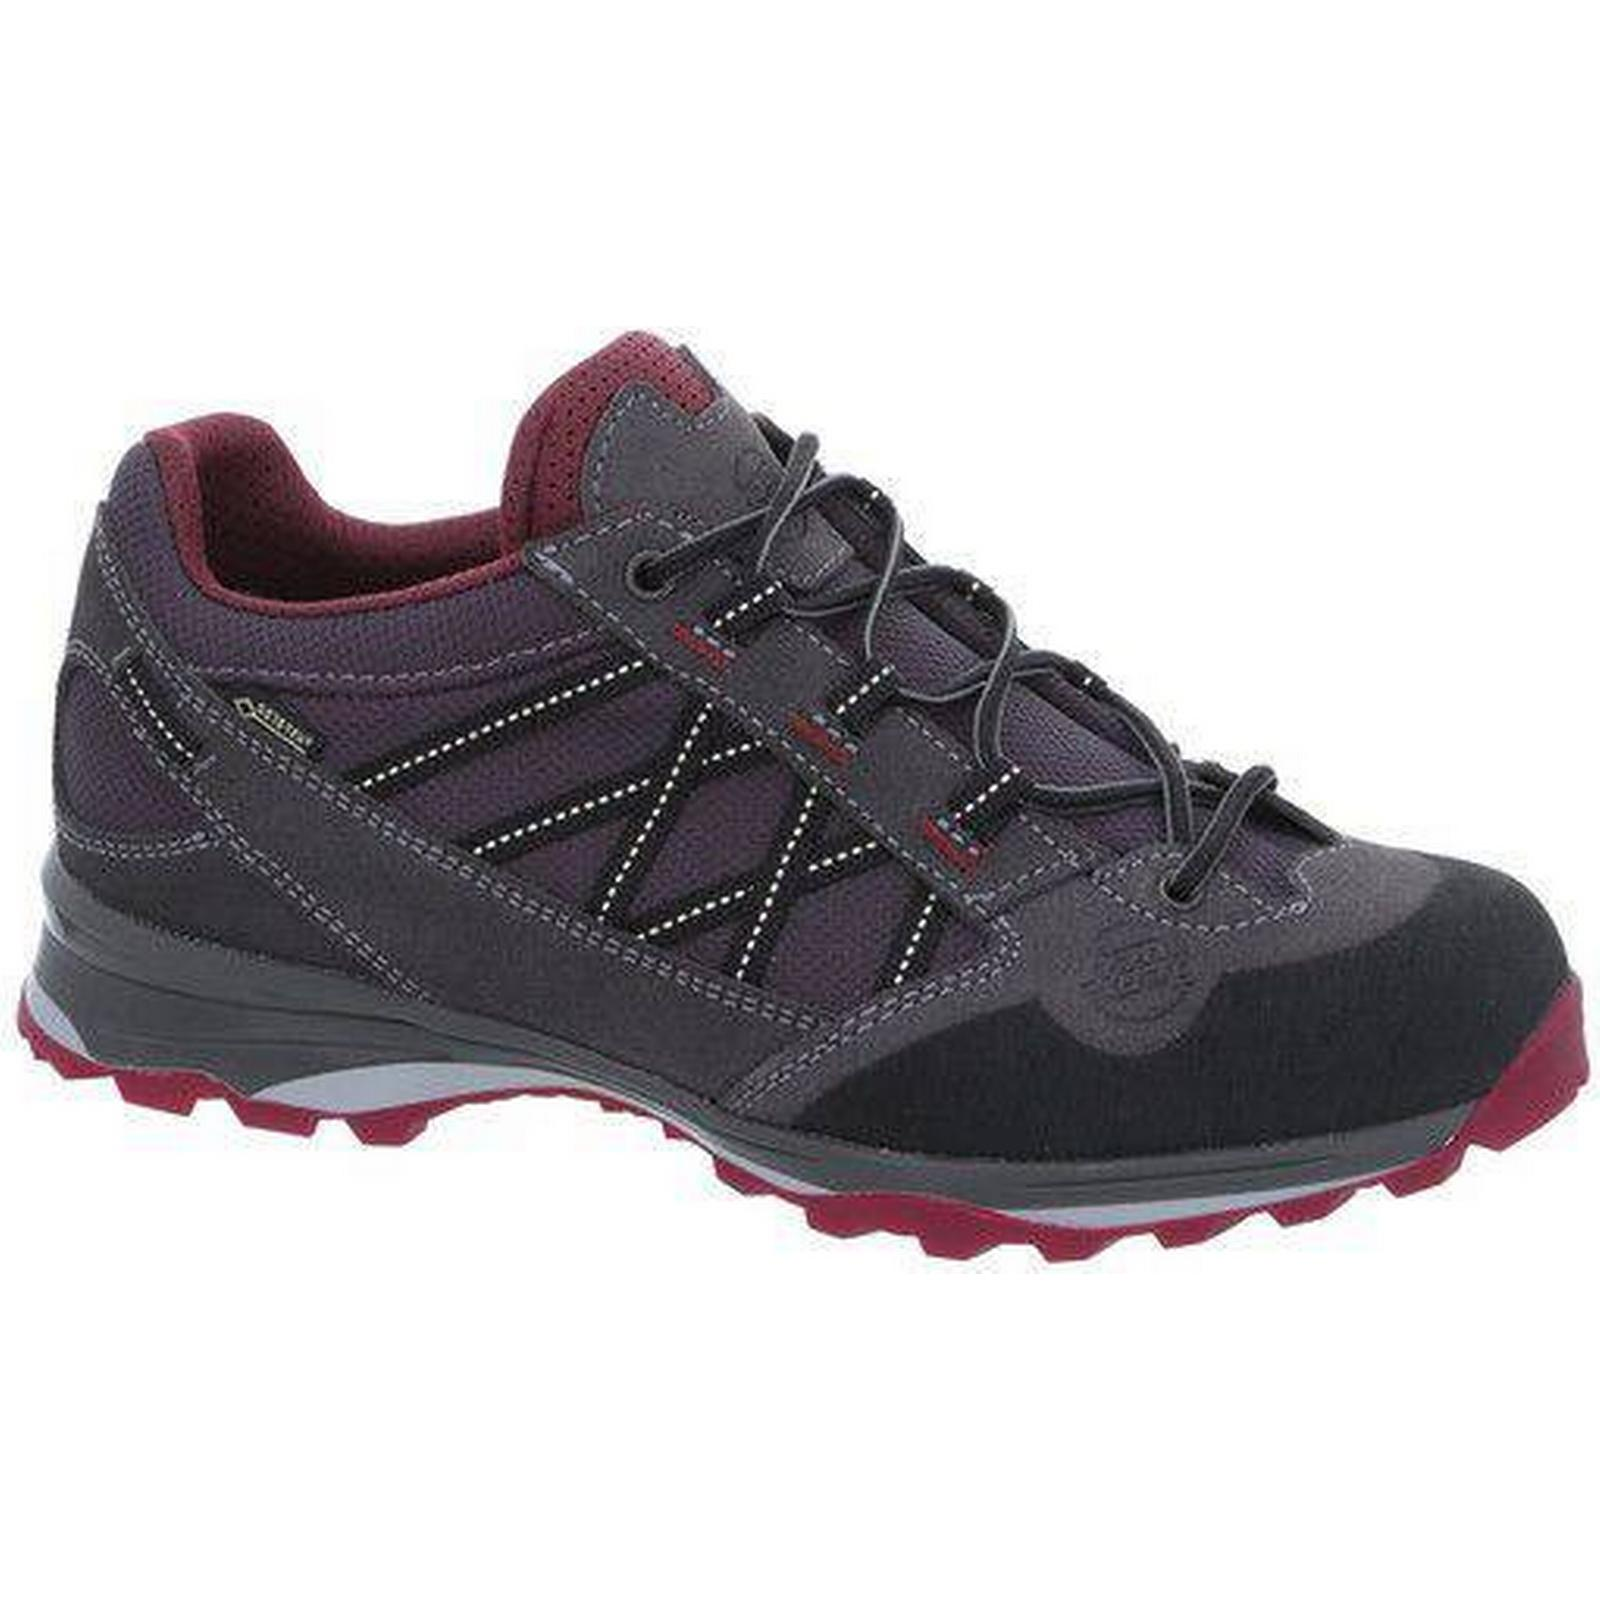 Hanwag Belorado II Low GTX Lady GTX Low - Please Select Your Size. c2e94a